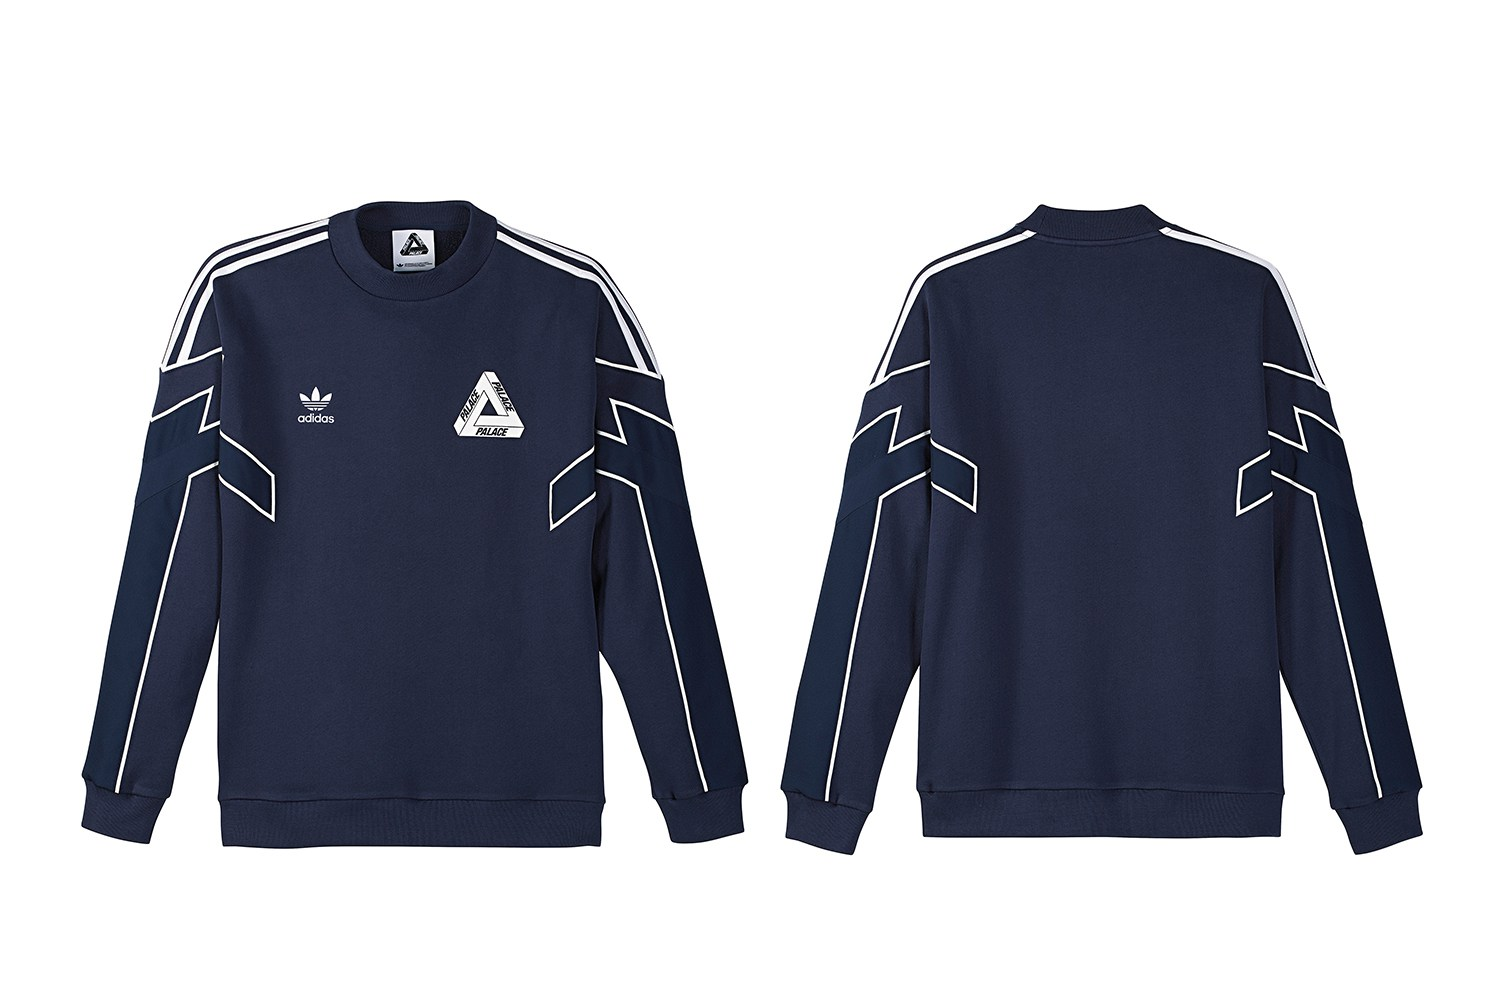 adidas-originals-palace-ss16-spring-summer-2016-collection-5